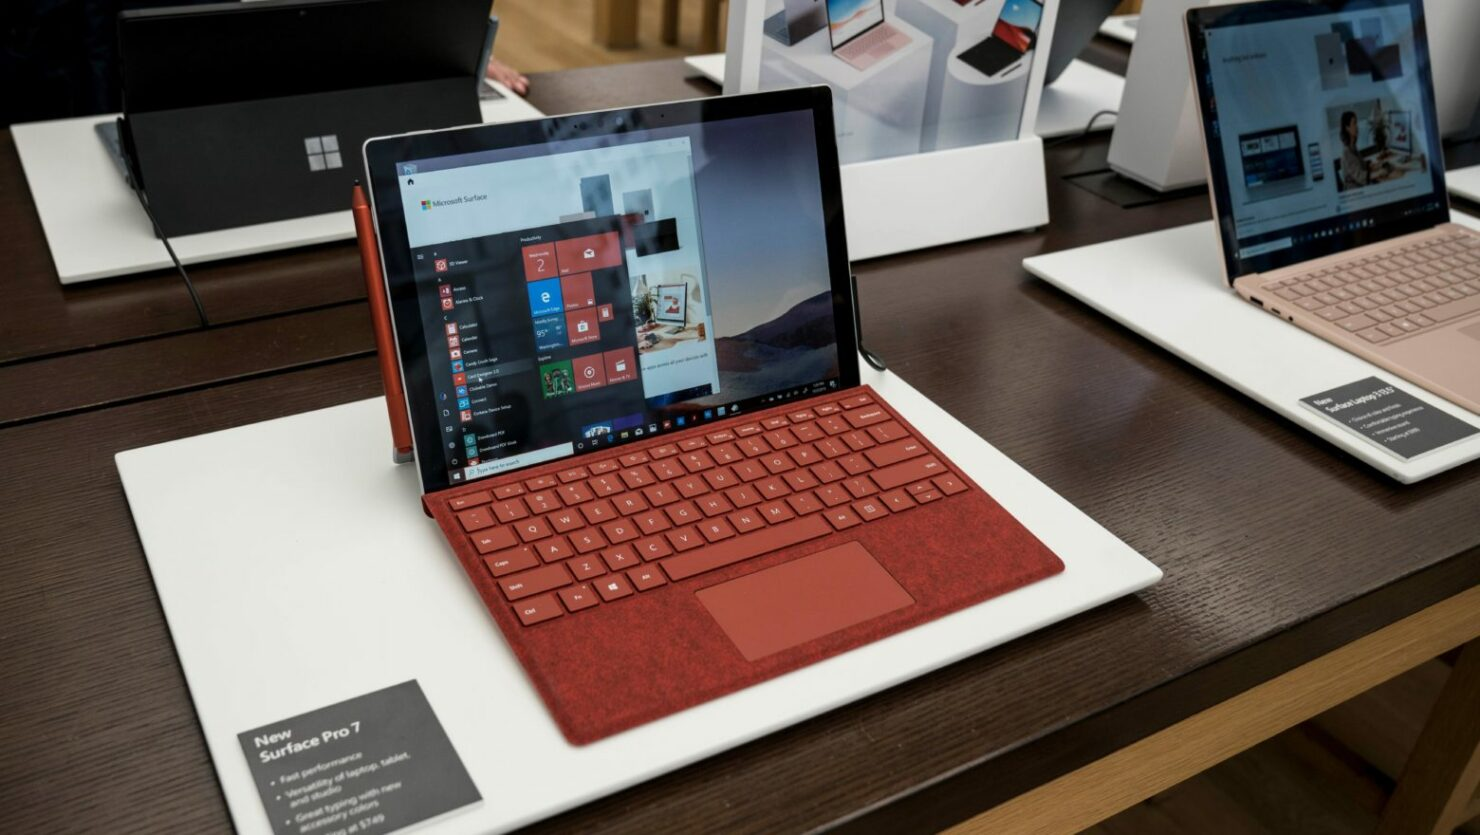 microsoft surface pro 7 discount Black Friday 2020 firmware updates